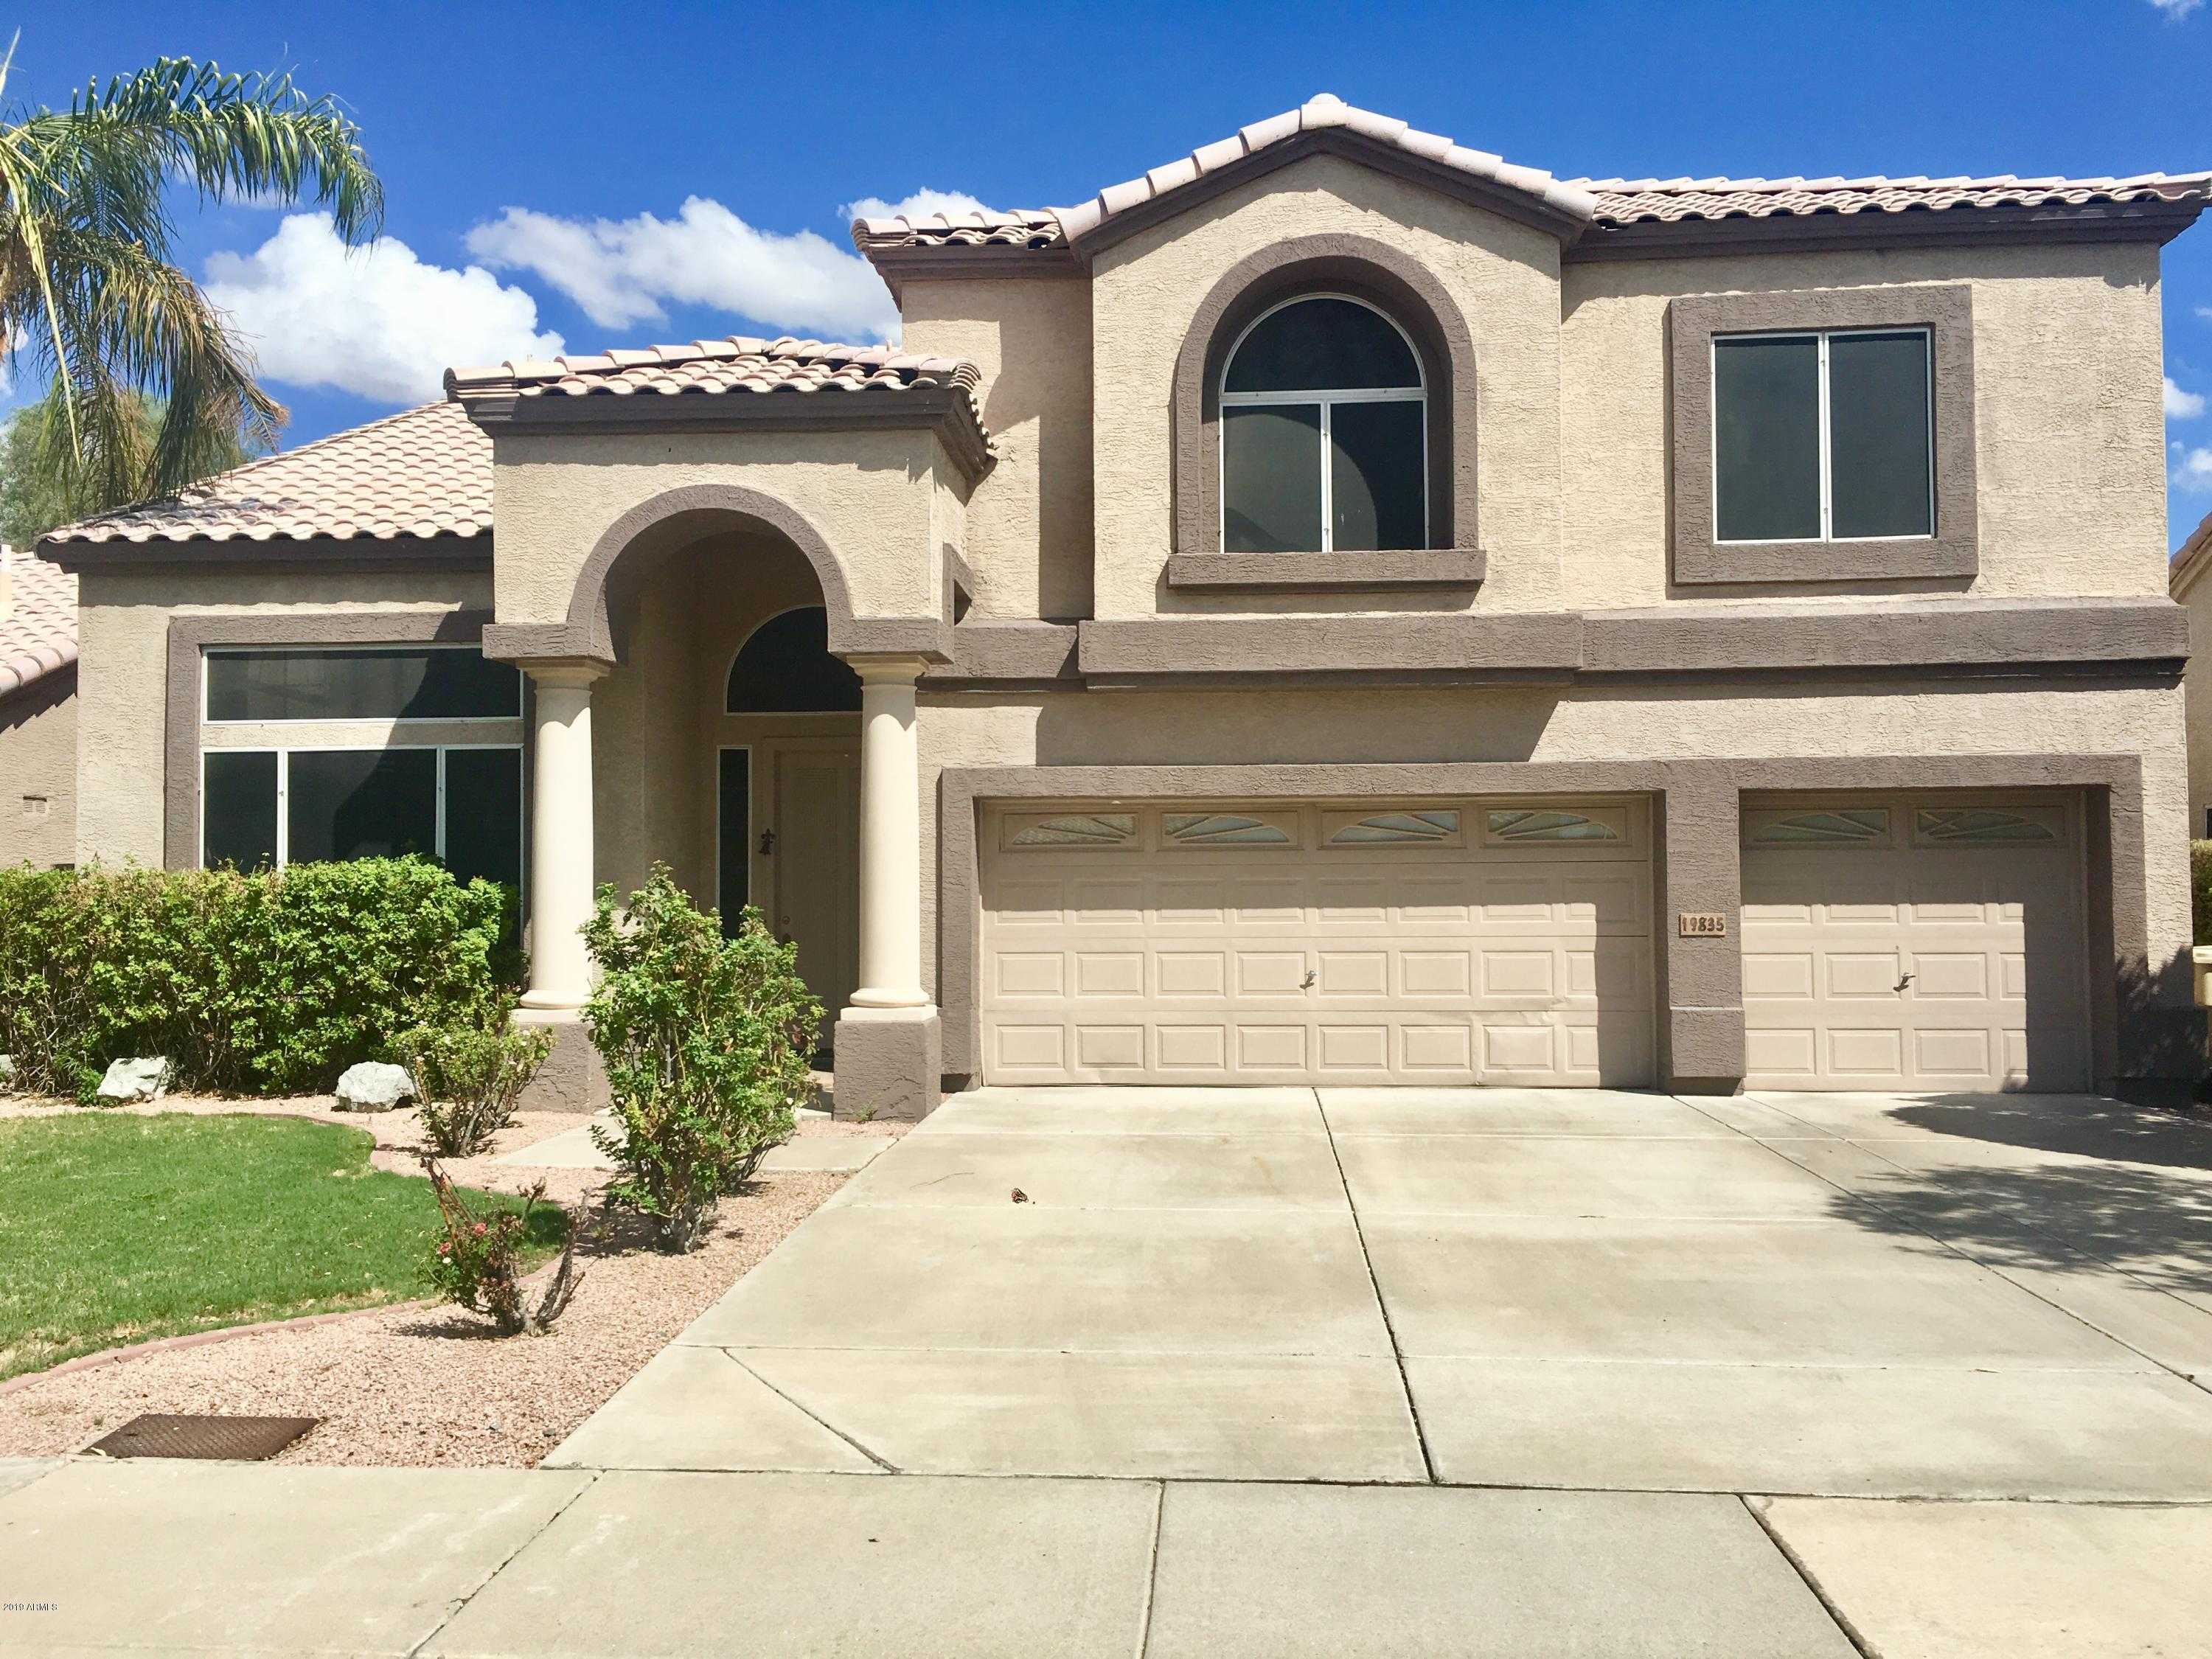 $379,000 - 5Br/3Ba - Home for Sale in Arrowhead Heights, Glendale